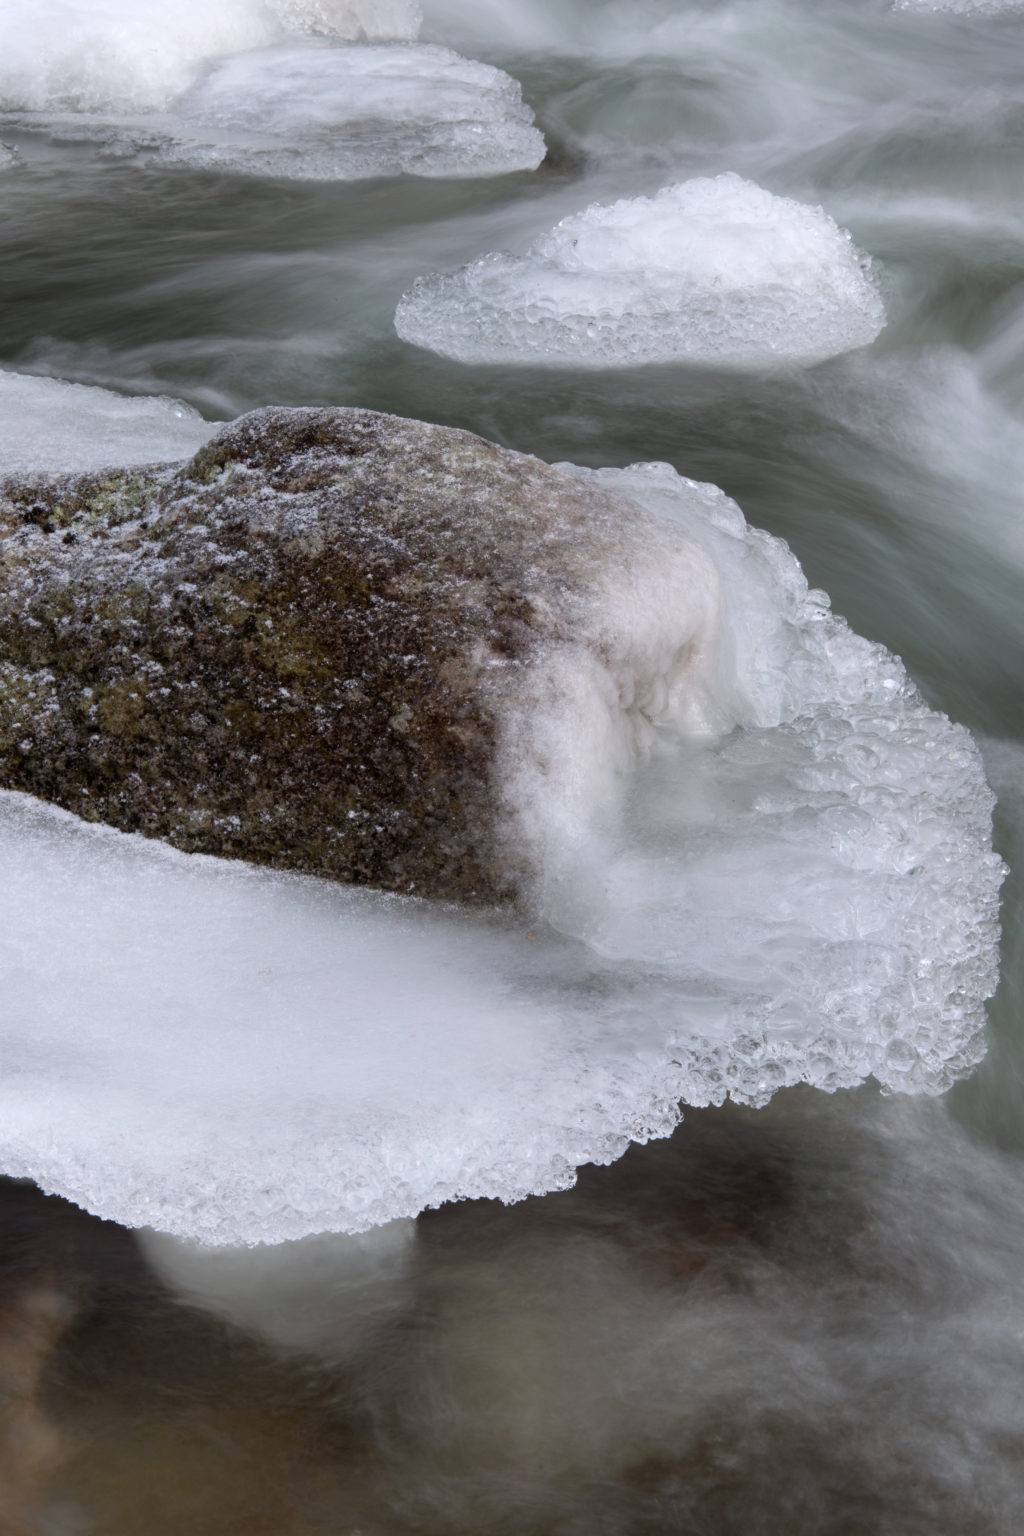 Icy Rock in Stream